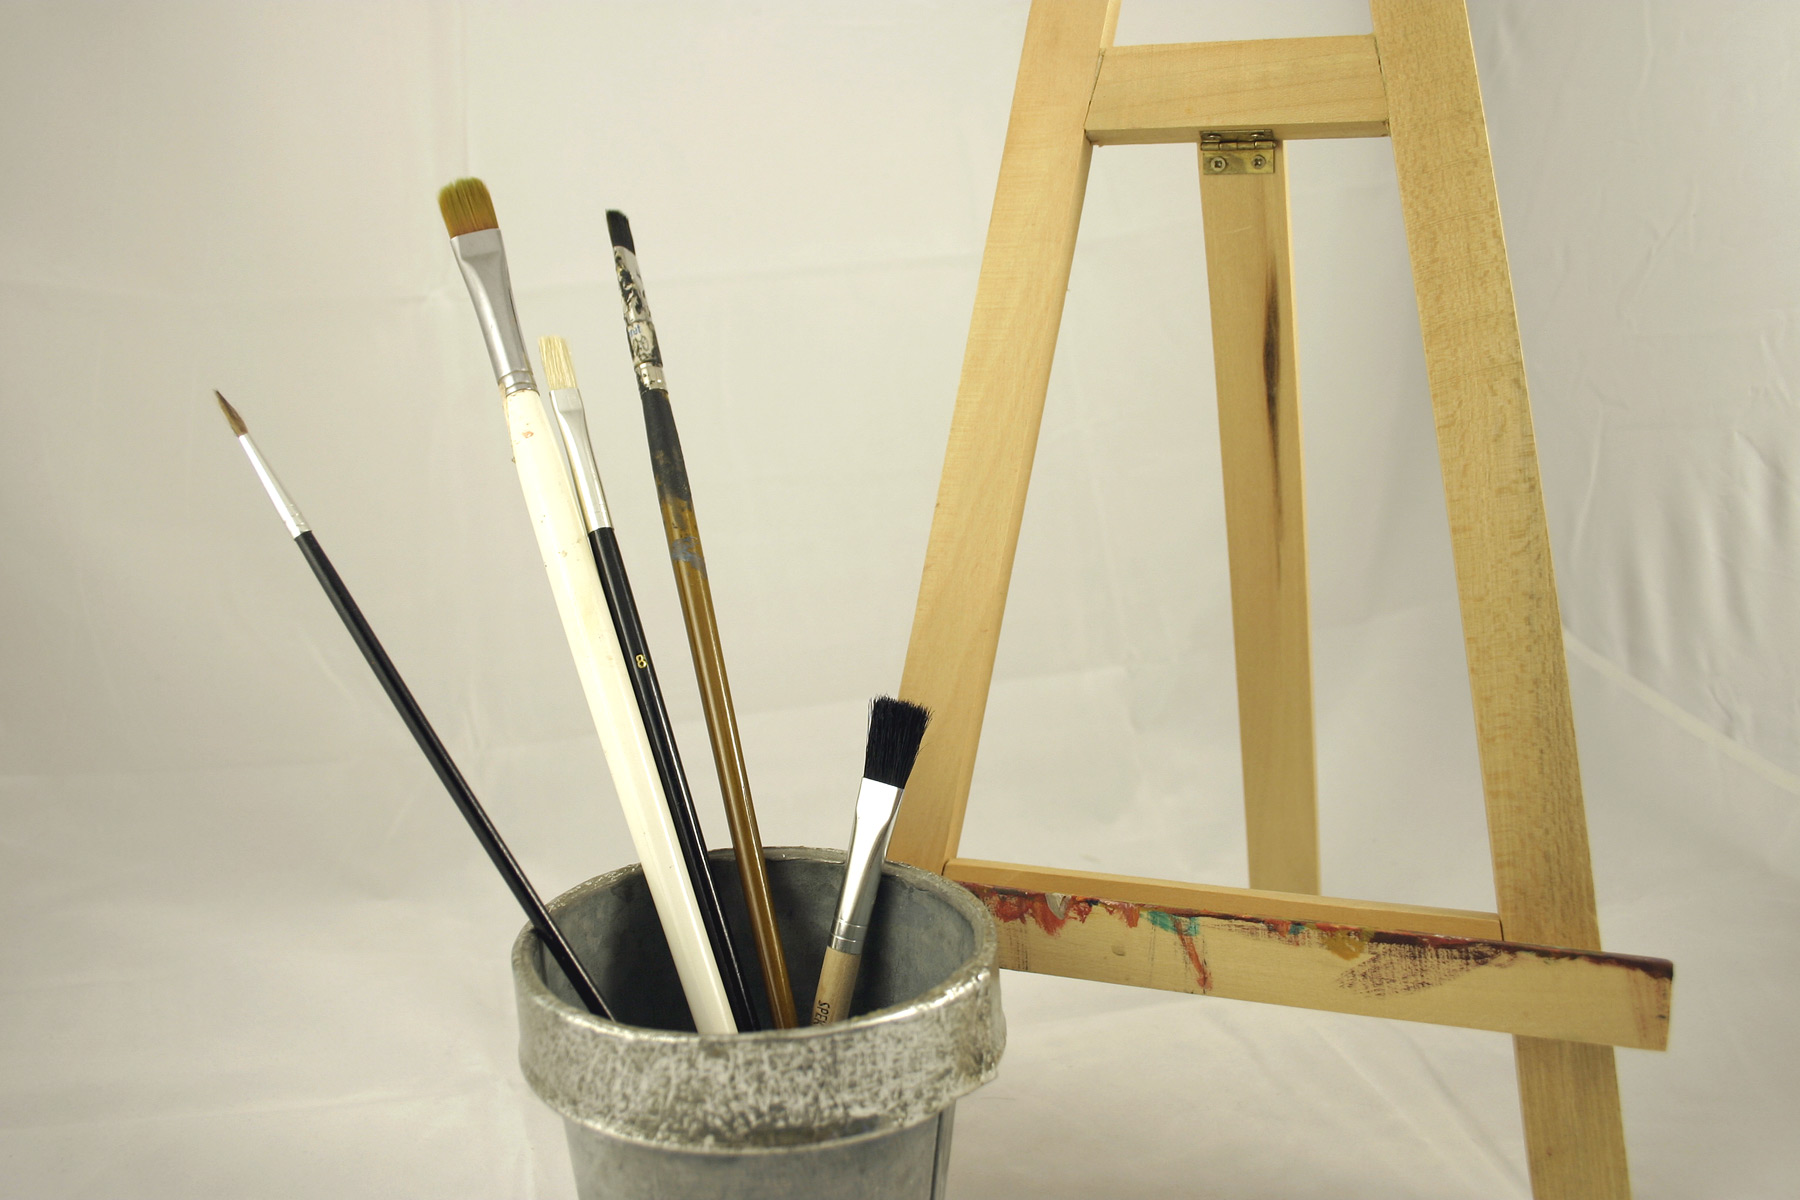 Paint brushes and display easel photo